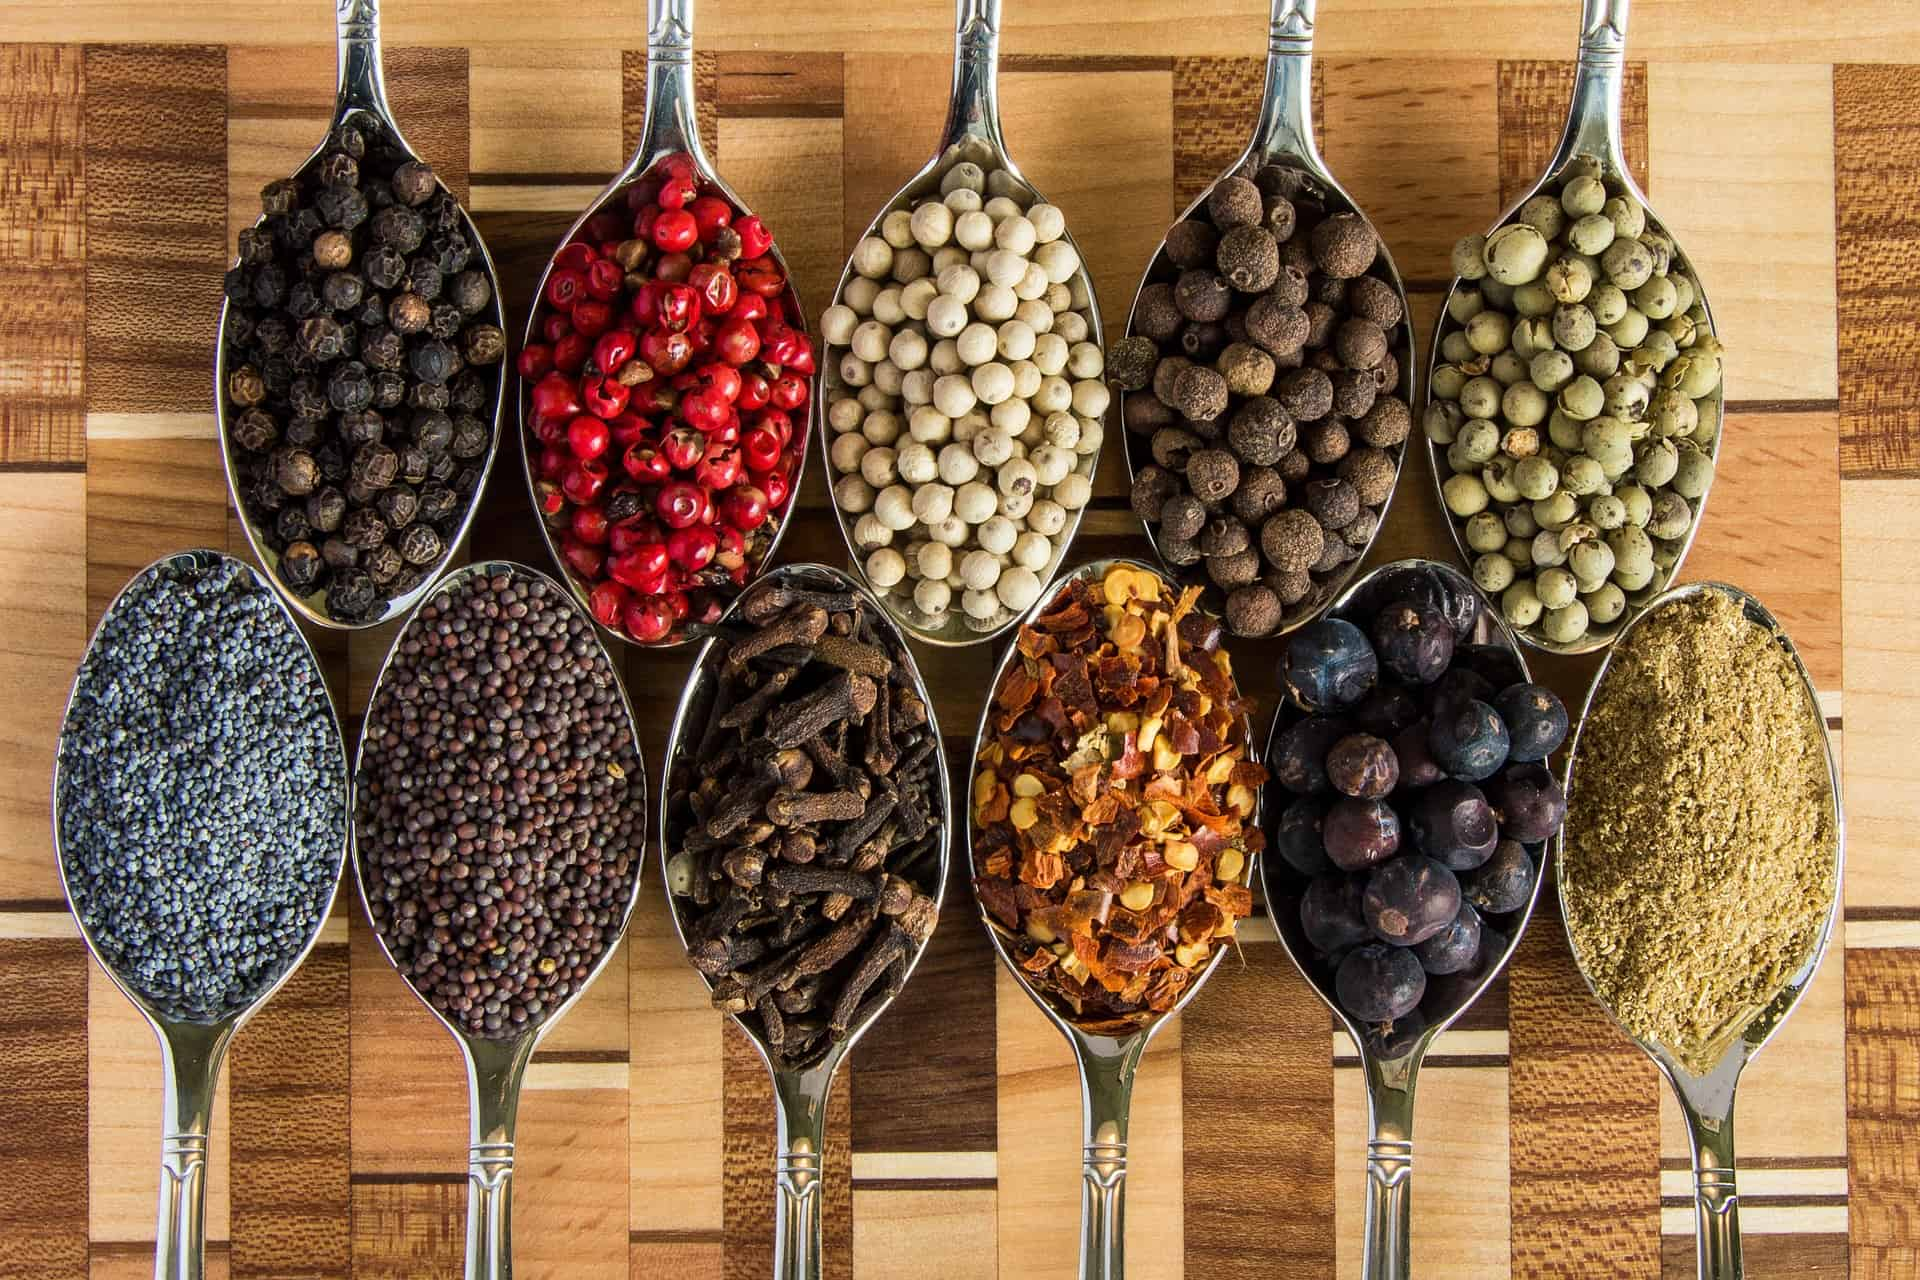 a variety of spices on spoons